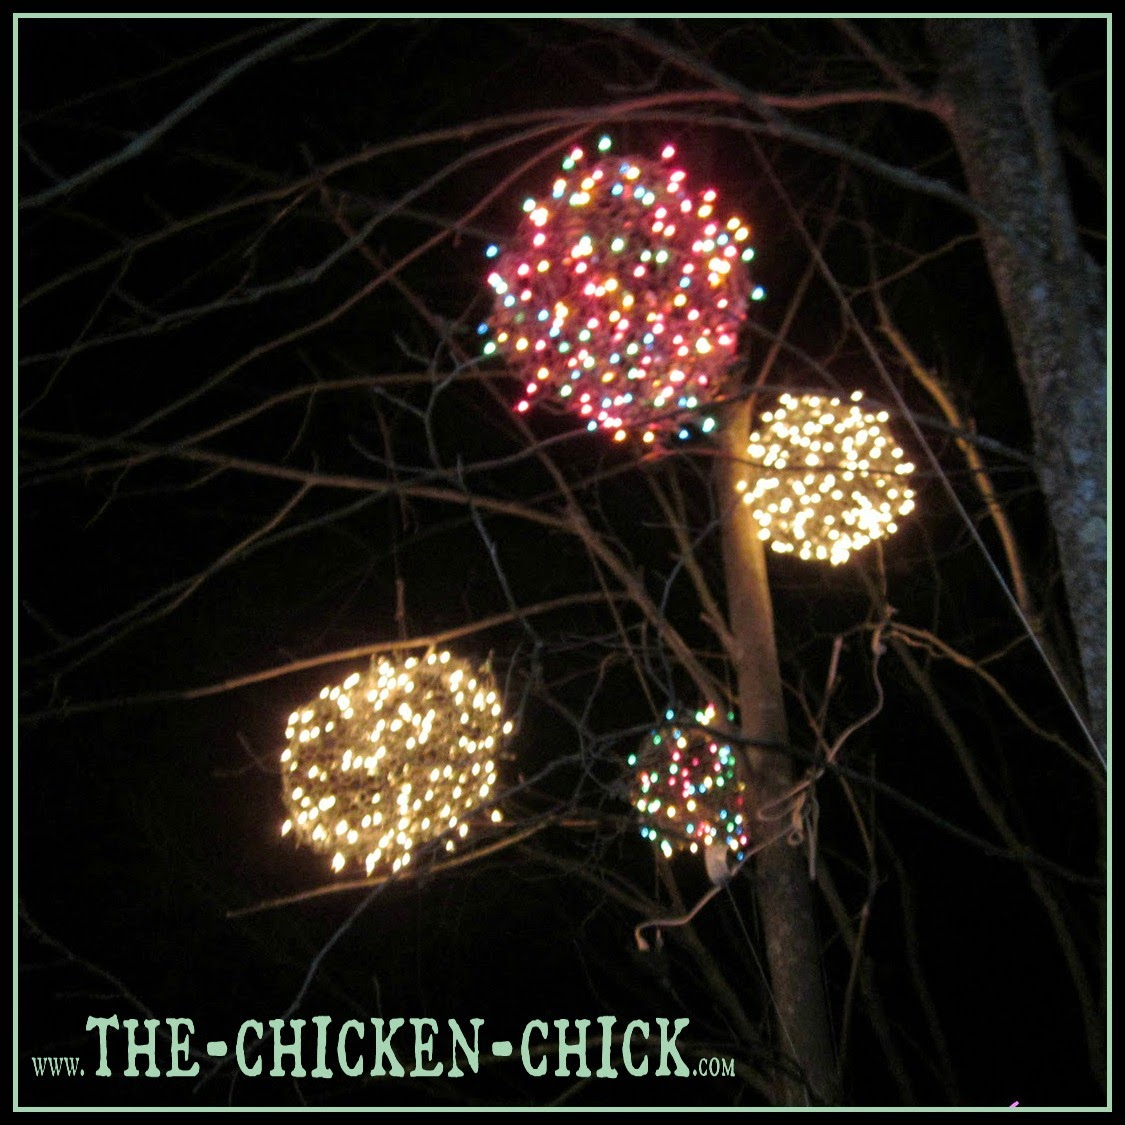 Chicken wire lighted christmas balls tis the season the for little more than a 20 minute time investment and approximately 300 per ball a mozeypictures Image collections